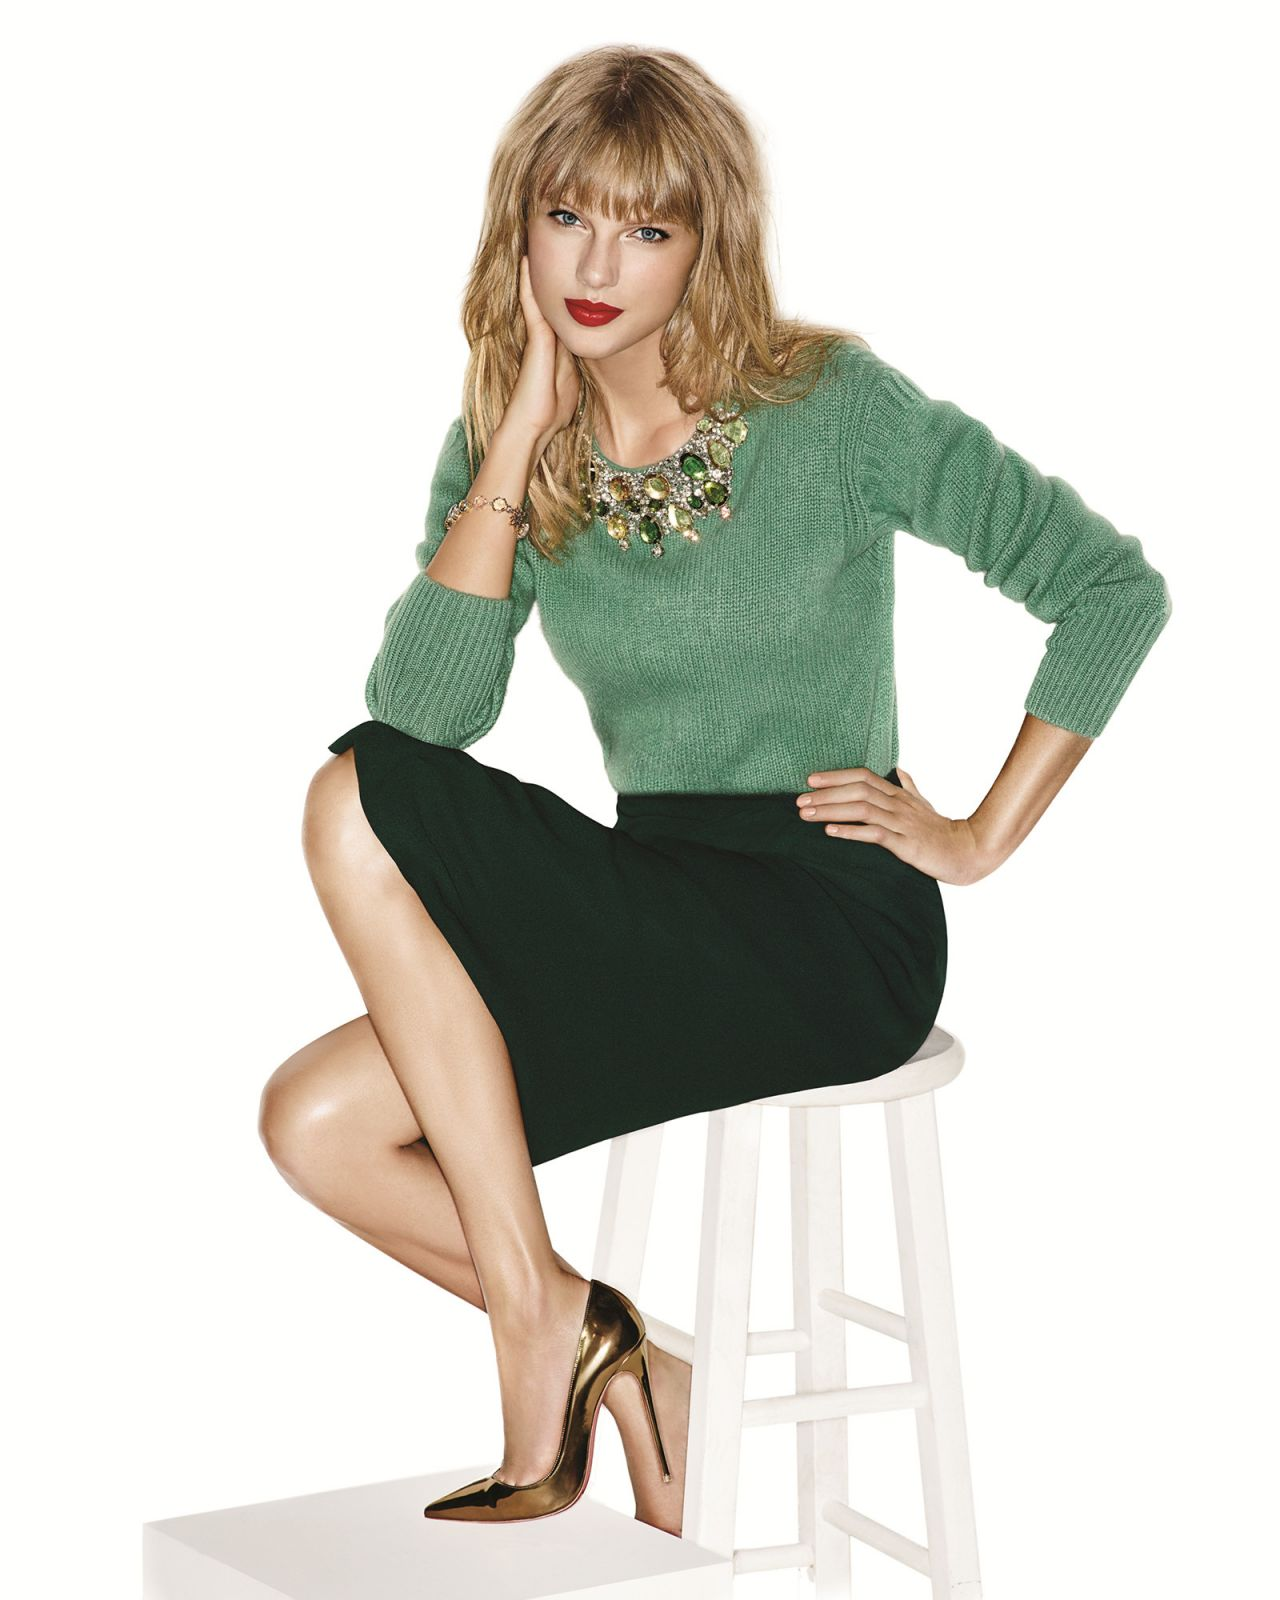 Taylor Swift - INSTYLE Magazine (US) - November 2013 Issue